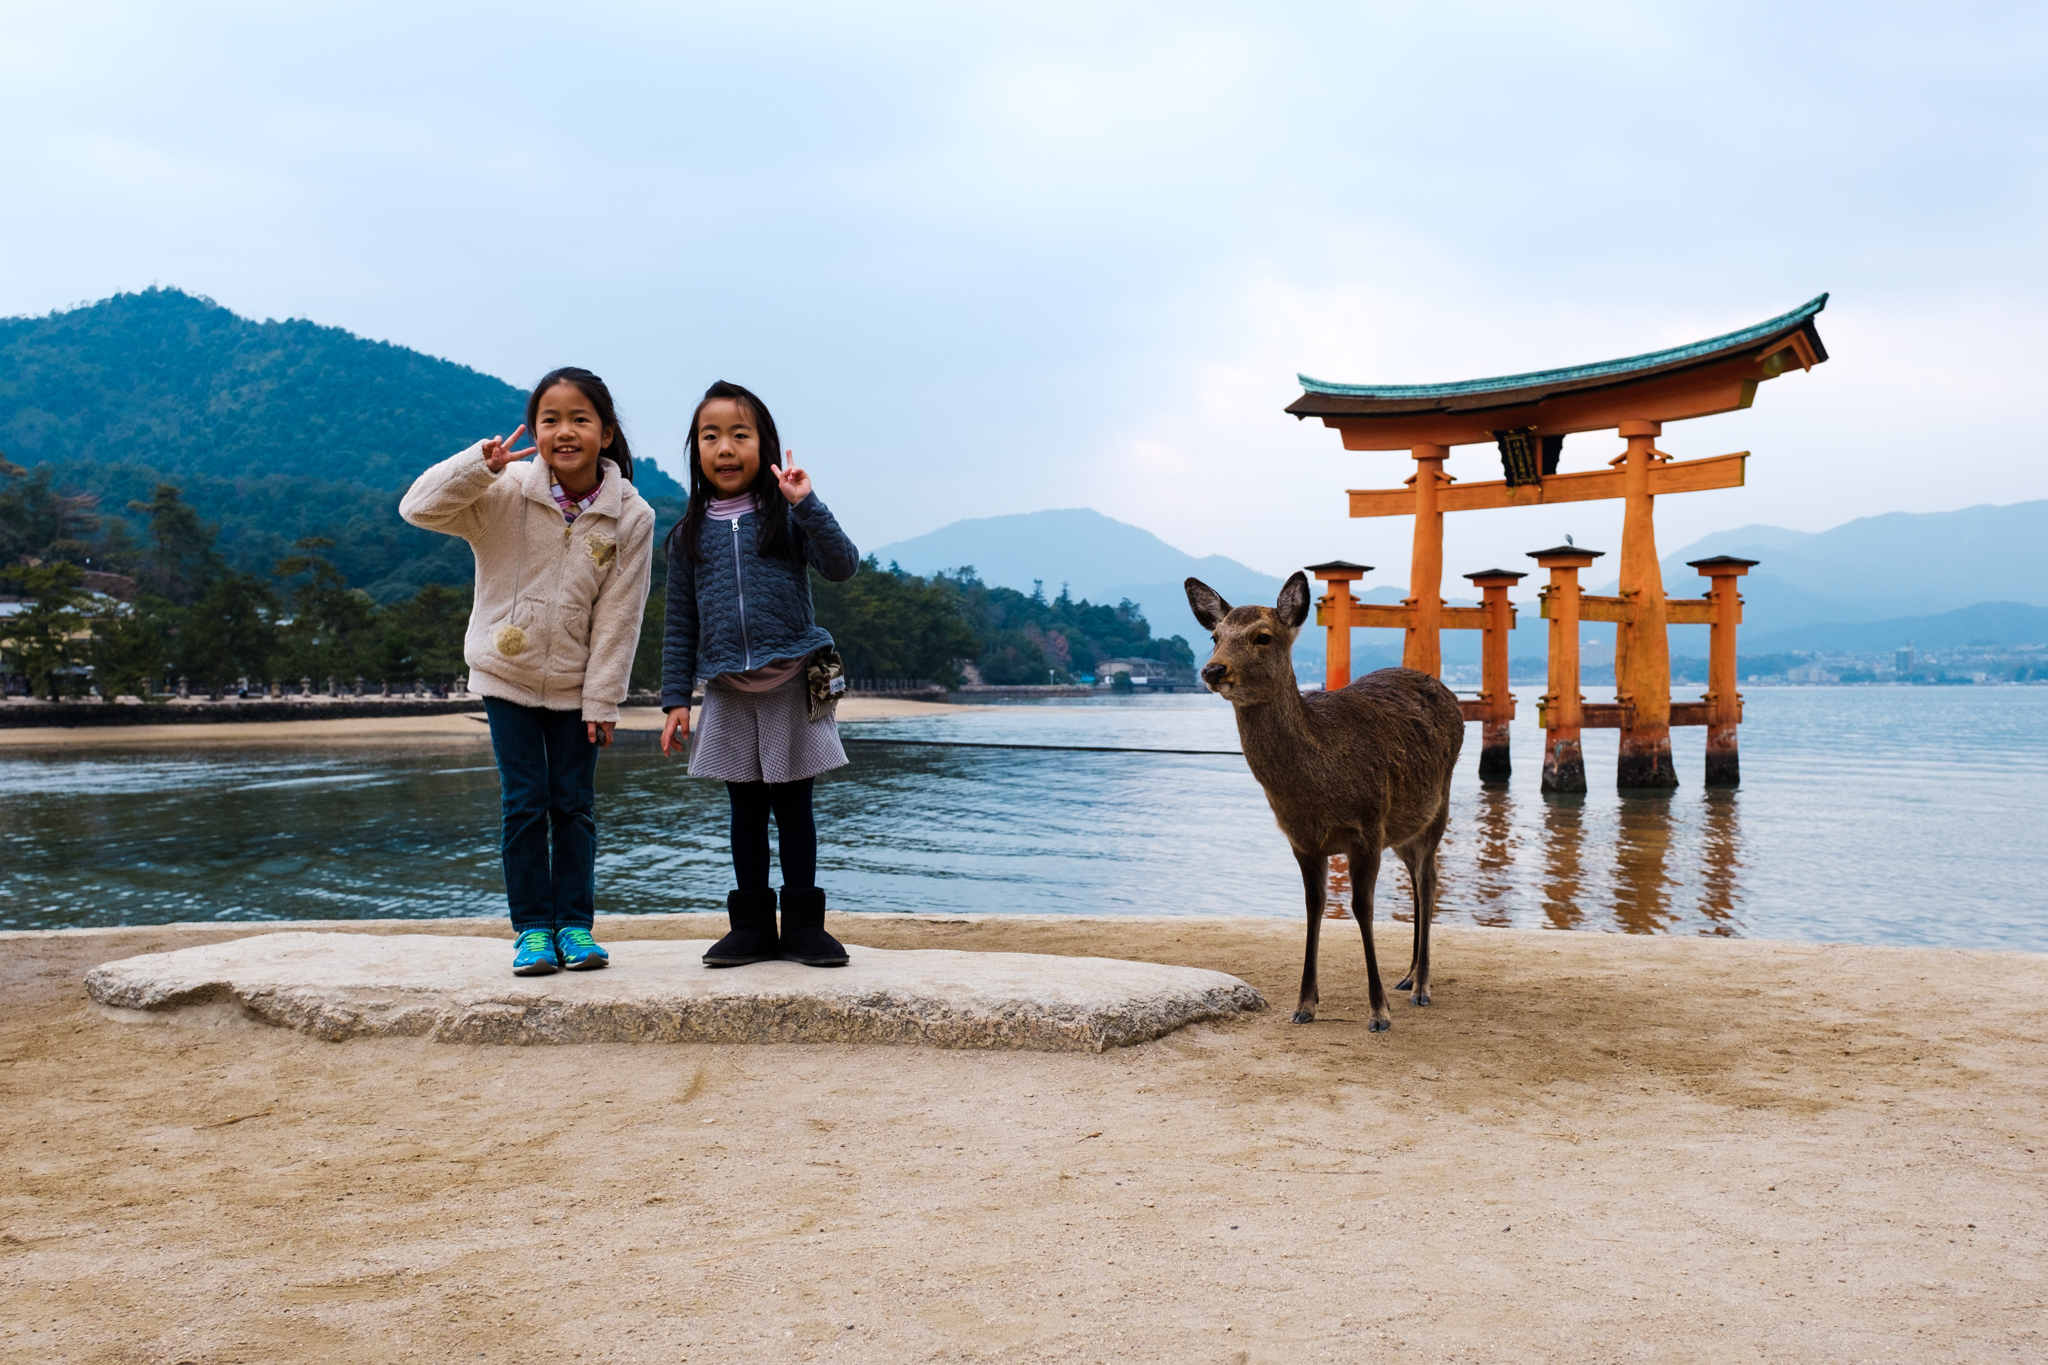 We knew that there were deer in Nara Park, but I was pleasantly surprised that they could be found on Miyajima Island as well.